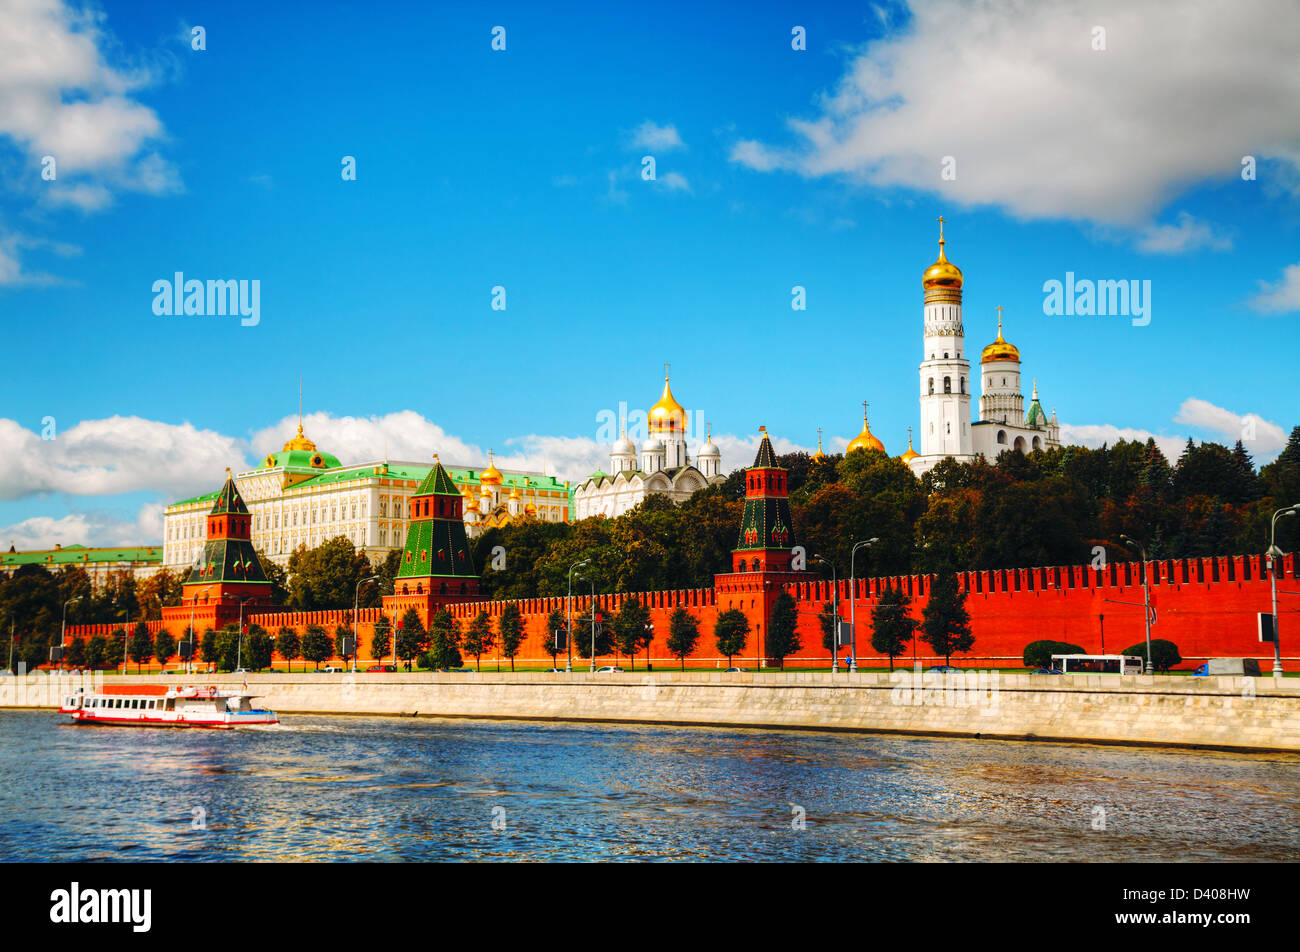 Panoramic overview of downtown Moscow with Kremlin on a sunny day - Stock Image